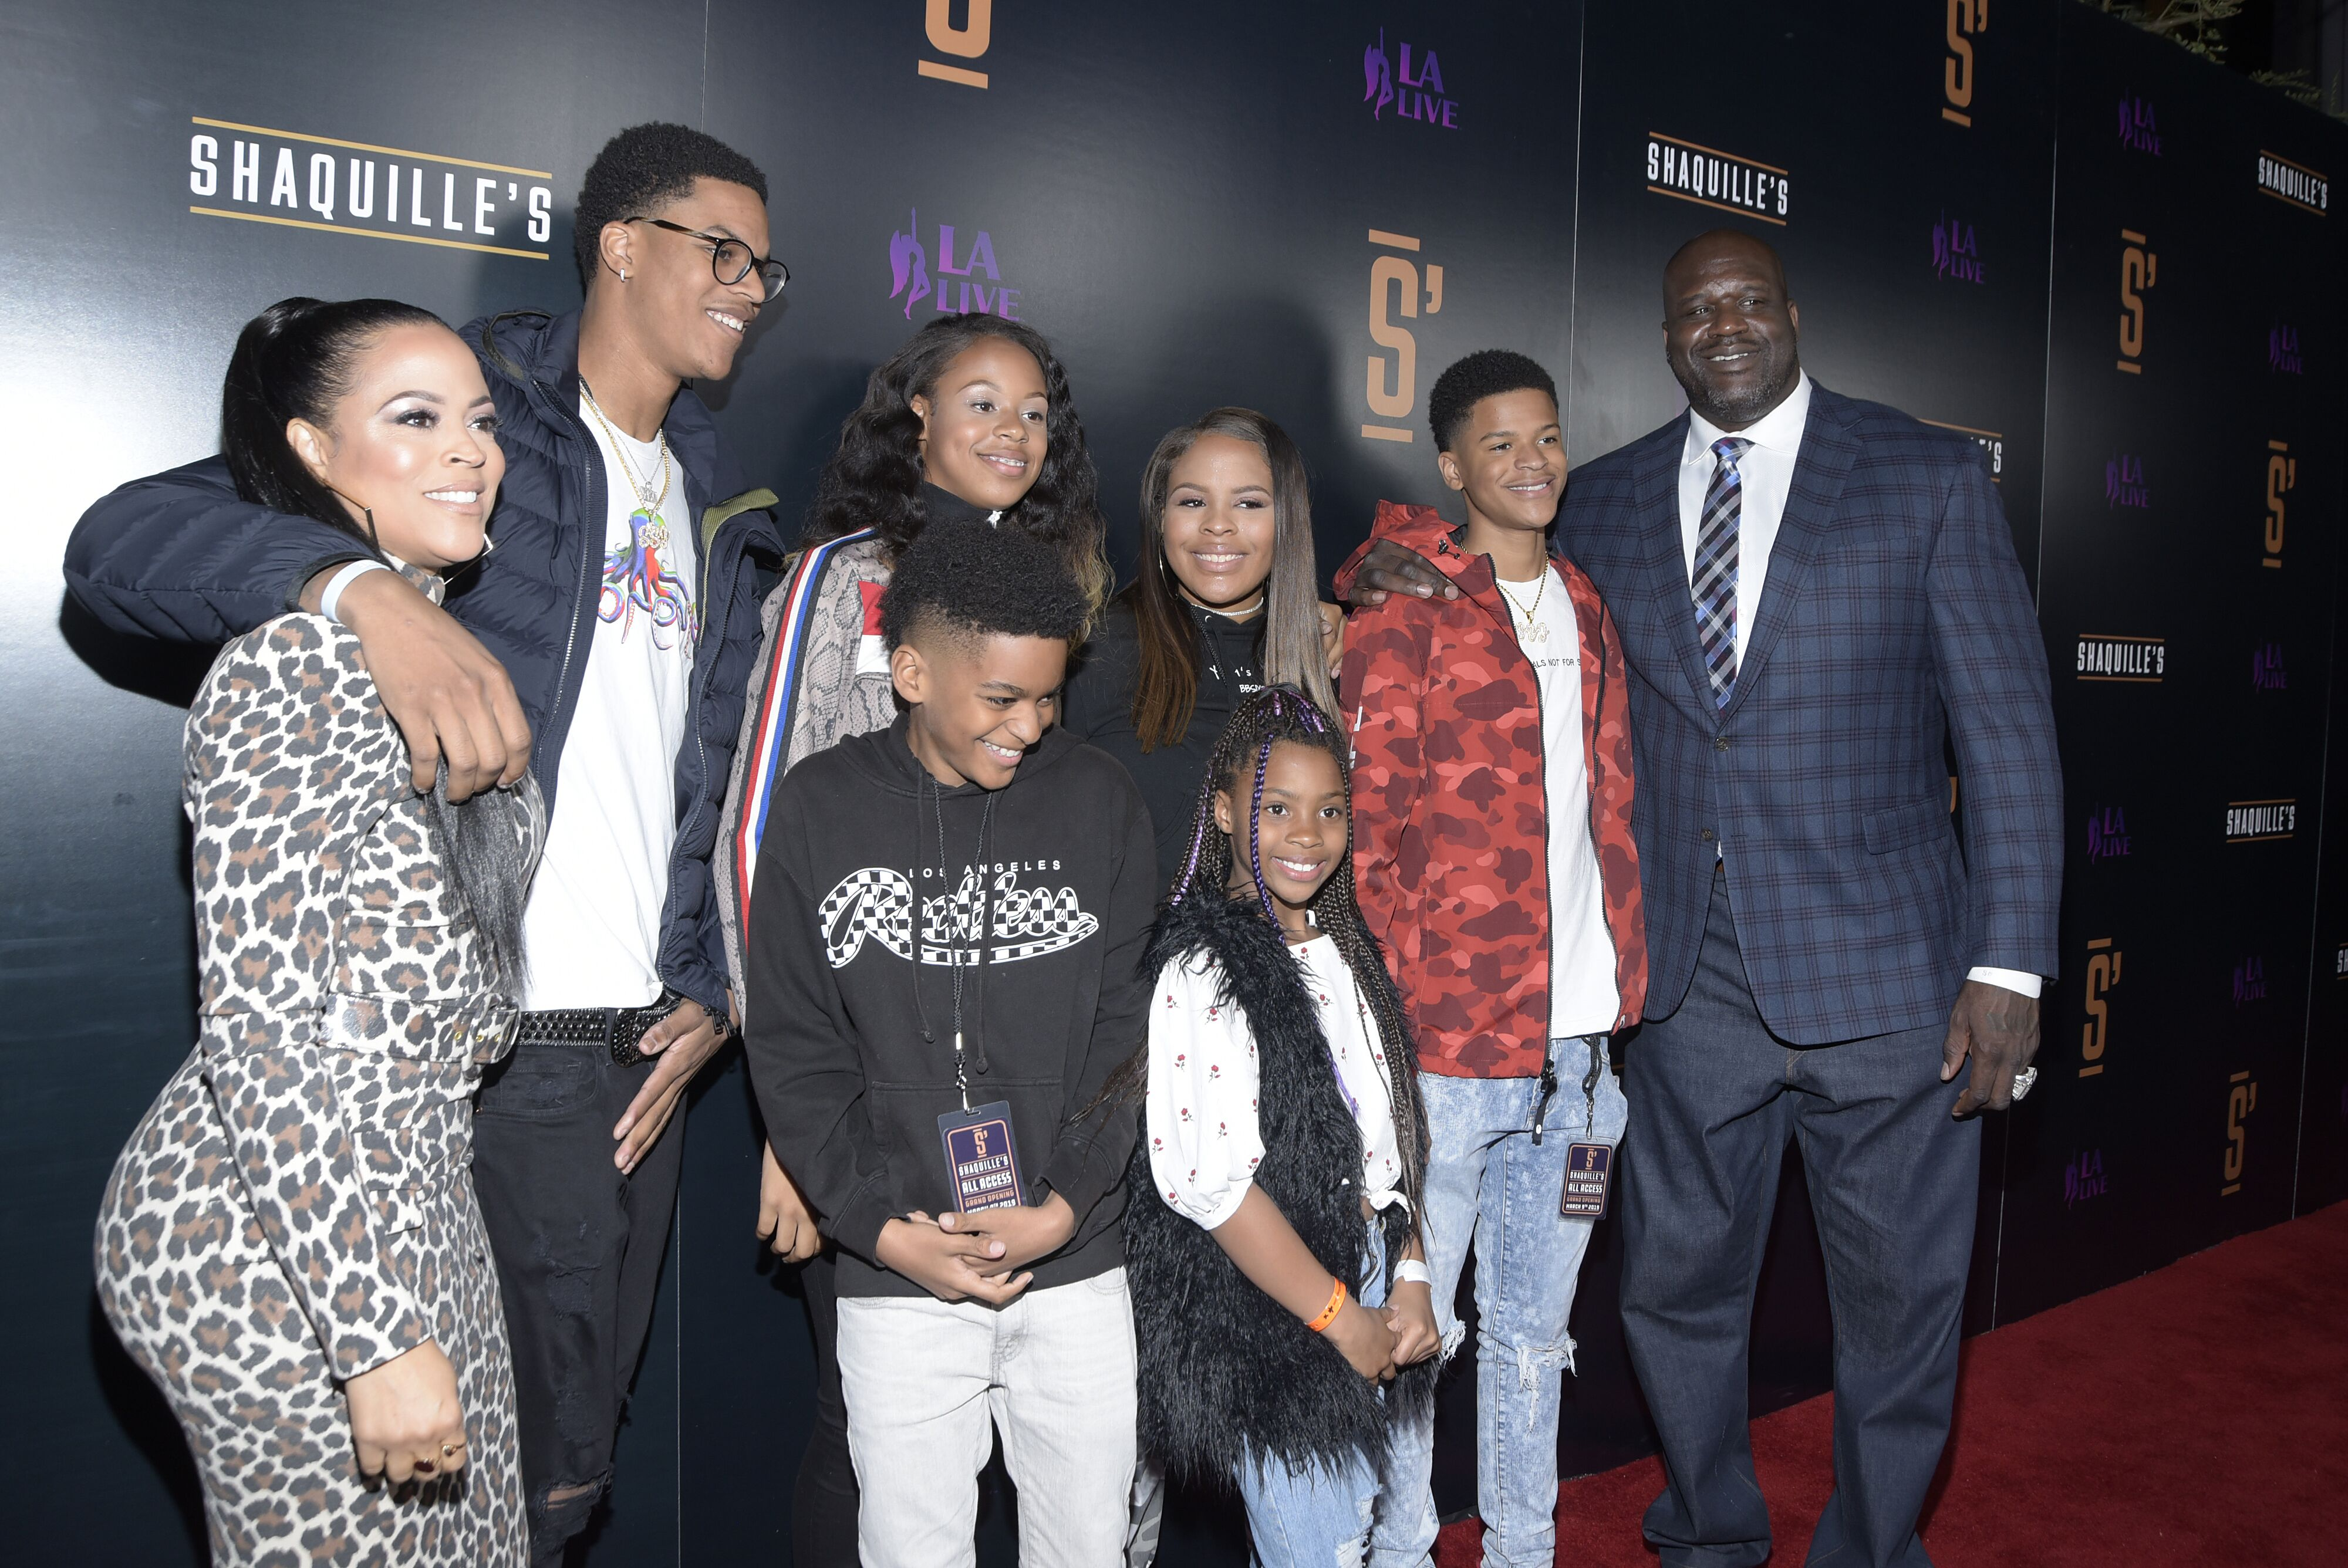 Shaunie O'Neal and family attend the grand opening of Shaquille's At L.A. on March 09, 2019 in Los Angeles, California. | Photo: Getty Images